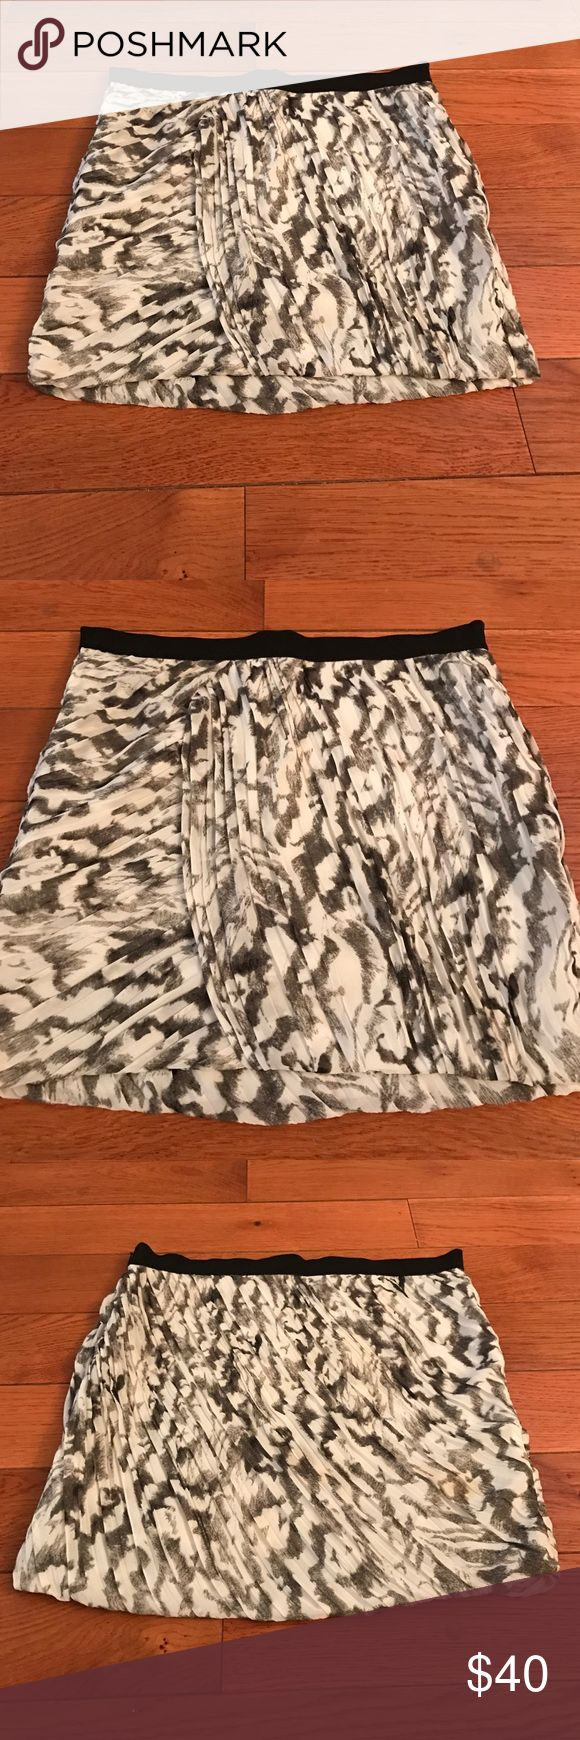 Armani Exchange Mini Pleated Skirt I love this Armani Exchange pleated cute and classy mini skirt with a subtle design (black, gray, white). Elastic black waistband with side hidden zipper. Petite 0 in great condition! A/X Armani Exchange Skirts Mini